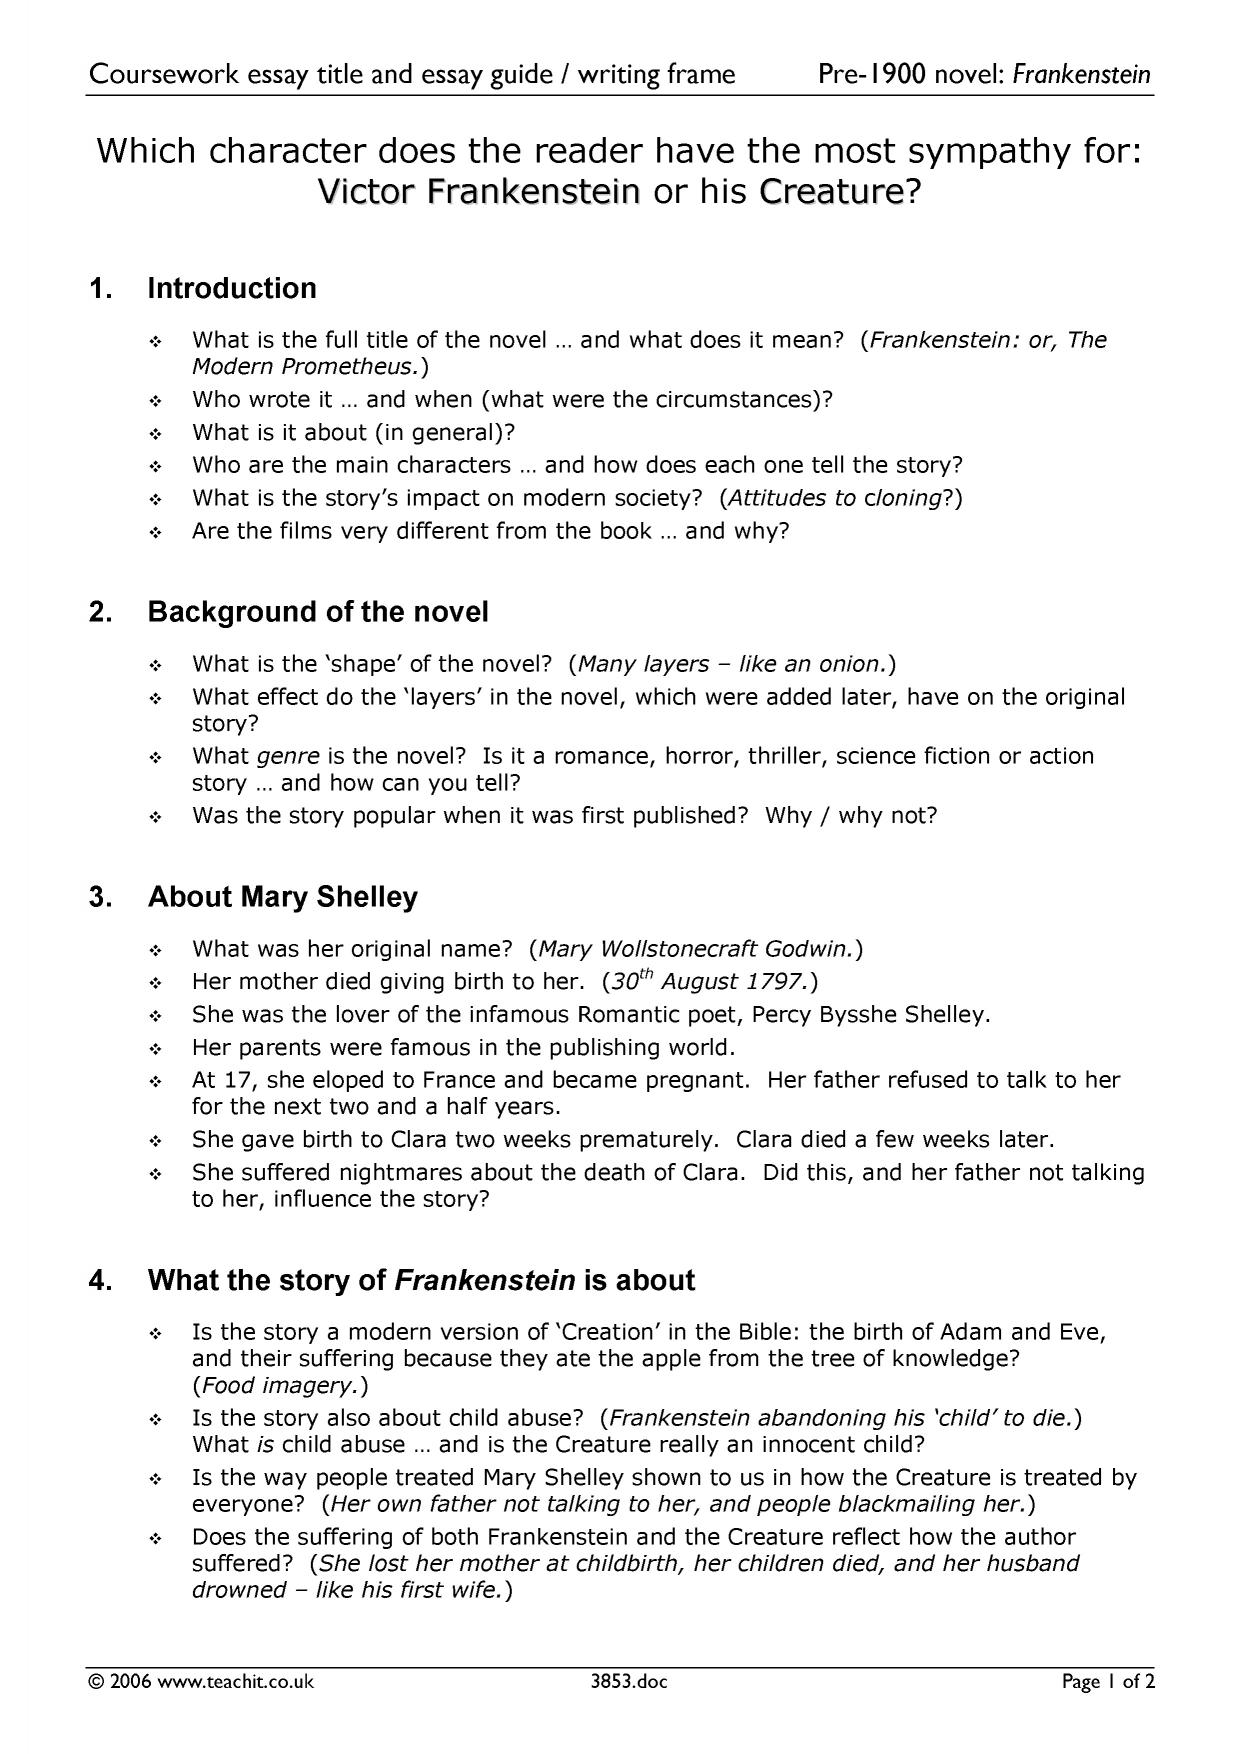 essay title and writing frame guide frankenstein by mary shelley  home frankenstein by mary shelley essay title and writing frame guide resource thumbnail